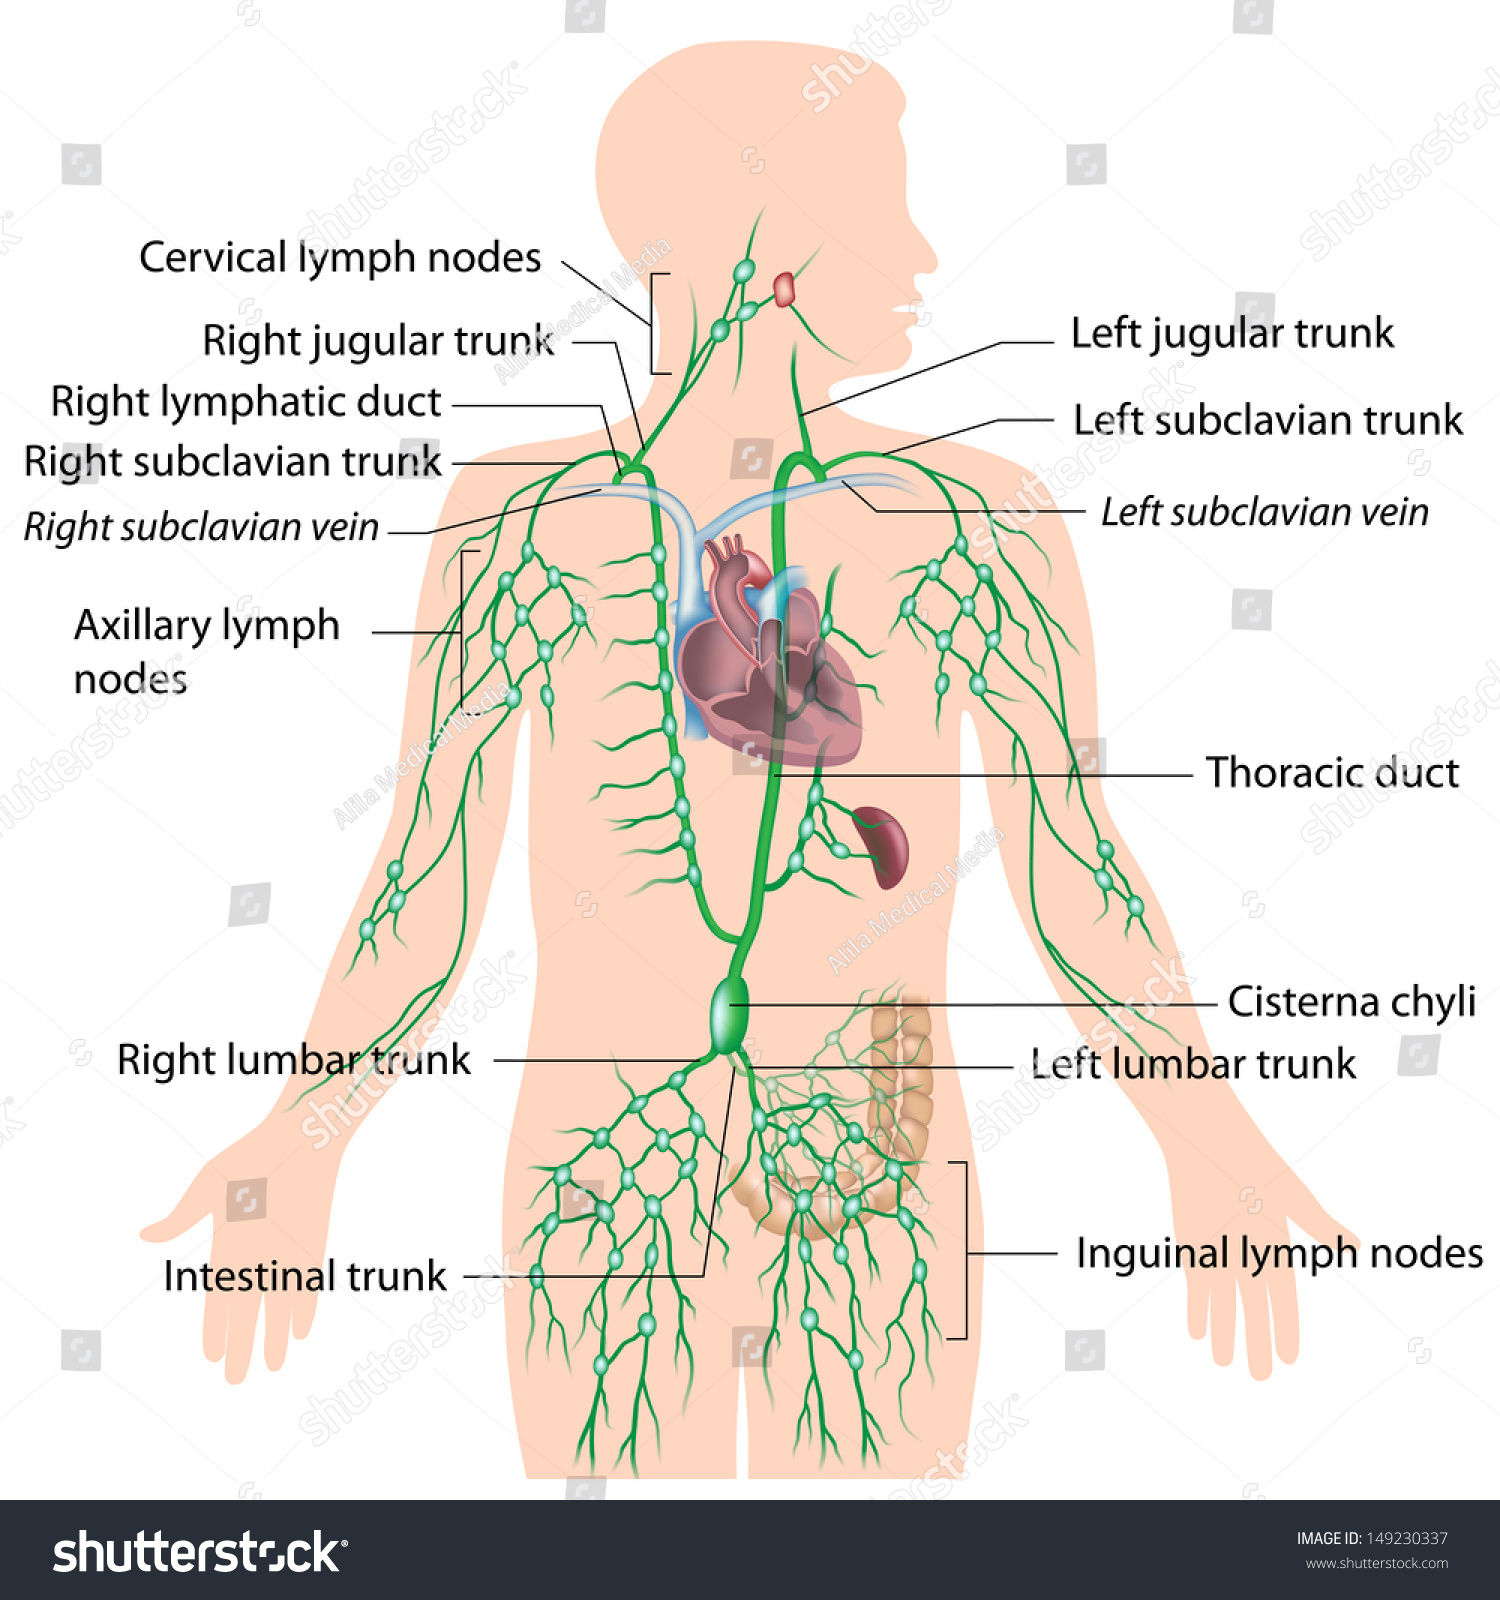 lymphatic system labeled diagram stock photo 149230337  : lymphatic diagram - findchart.co